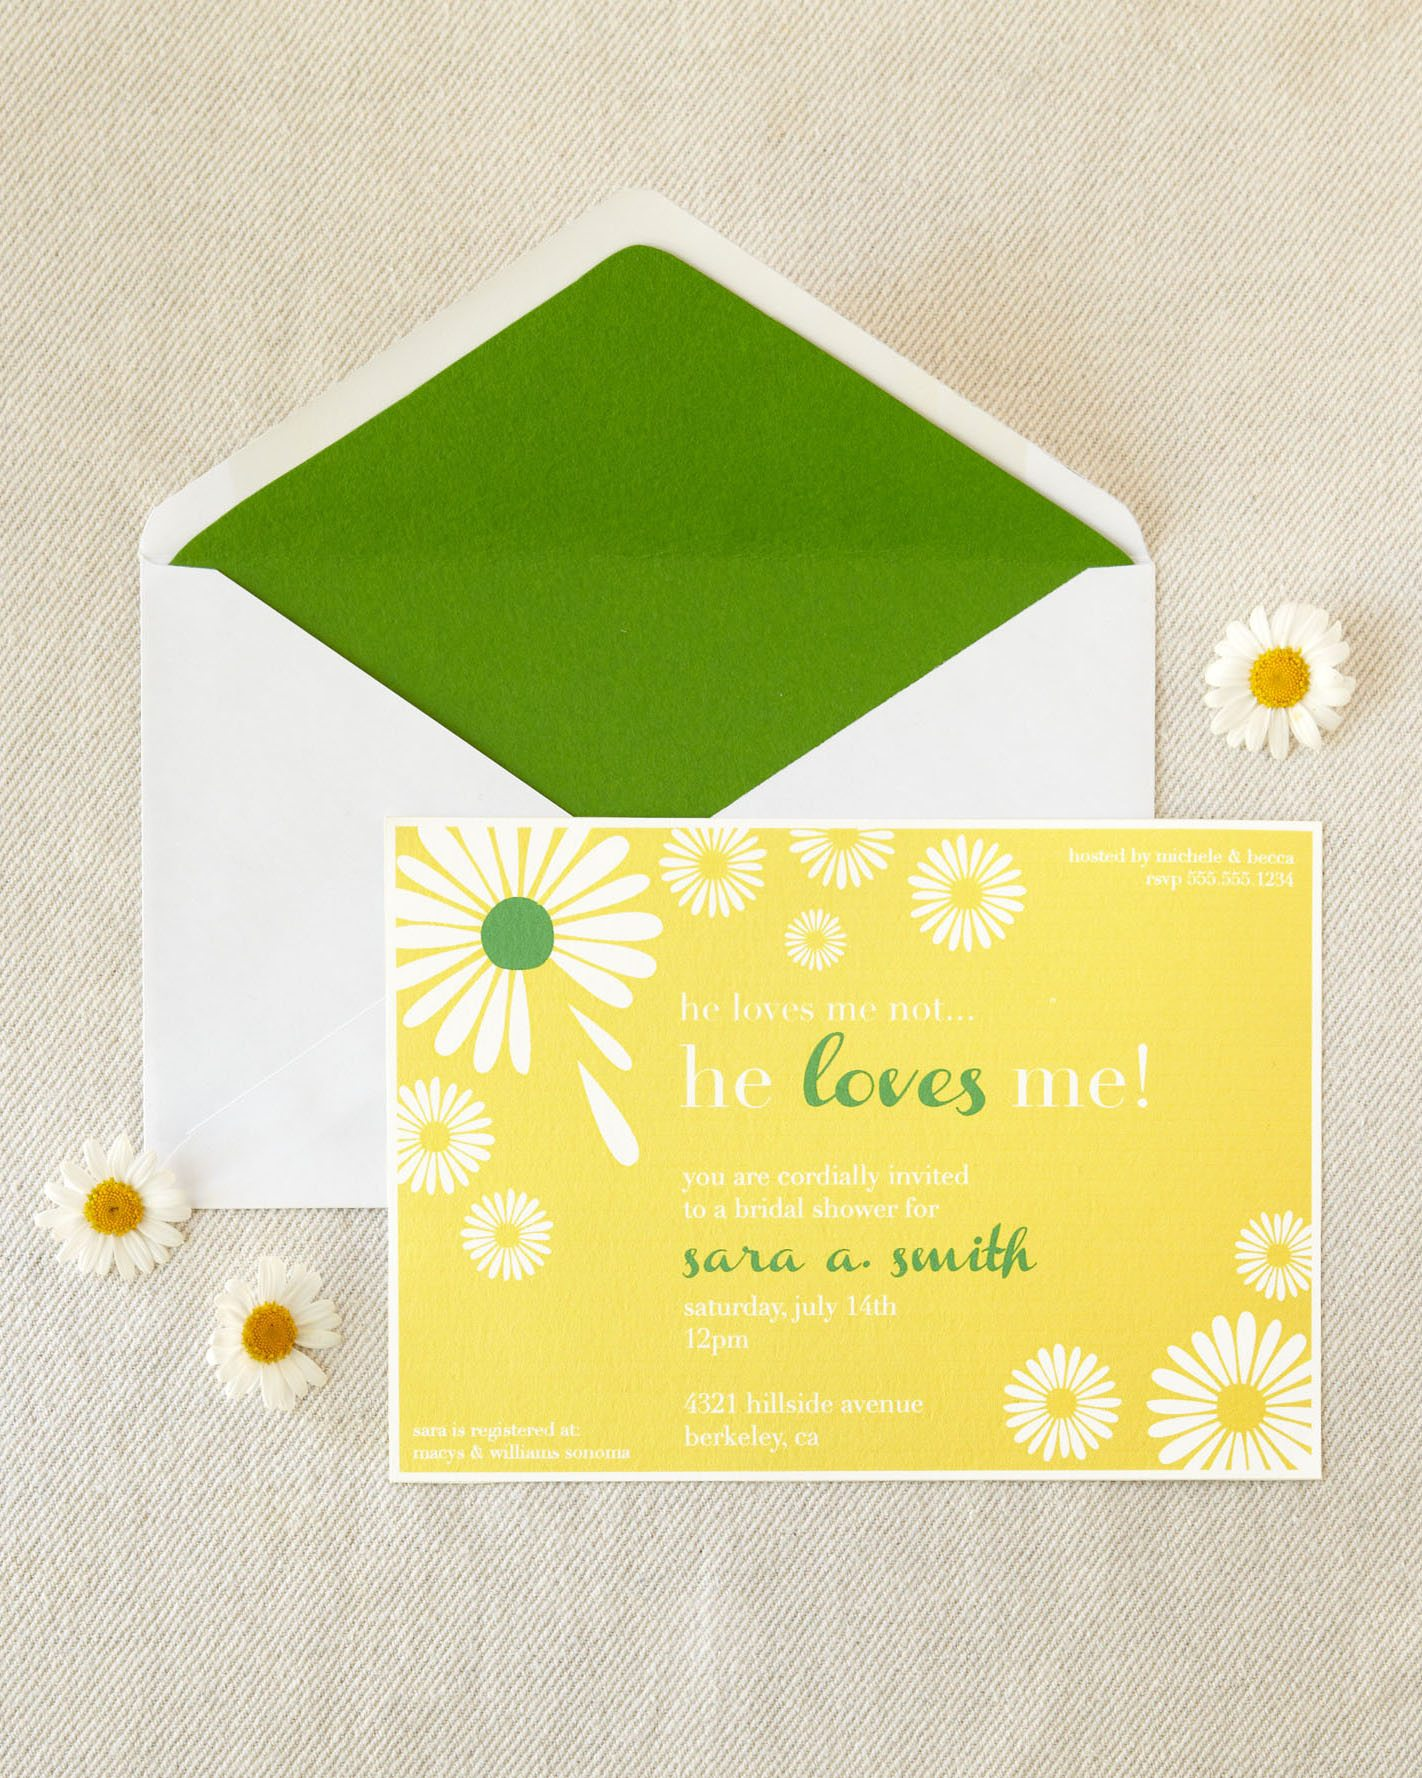 daisy bridal shower invitations view more from a daisy spring bridal ...